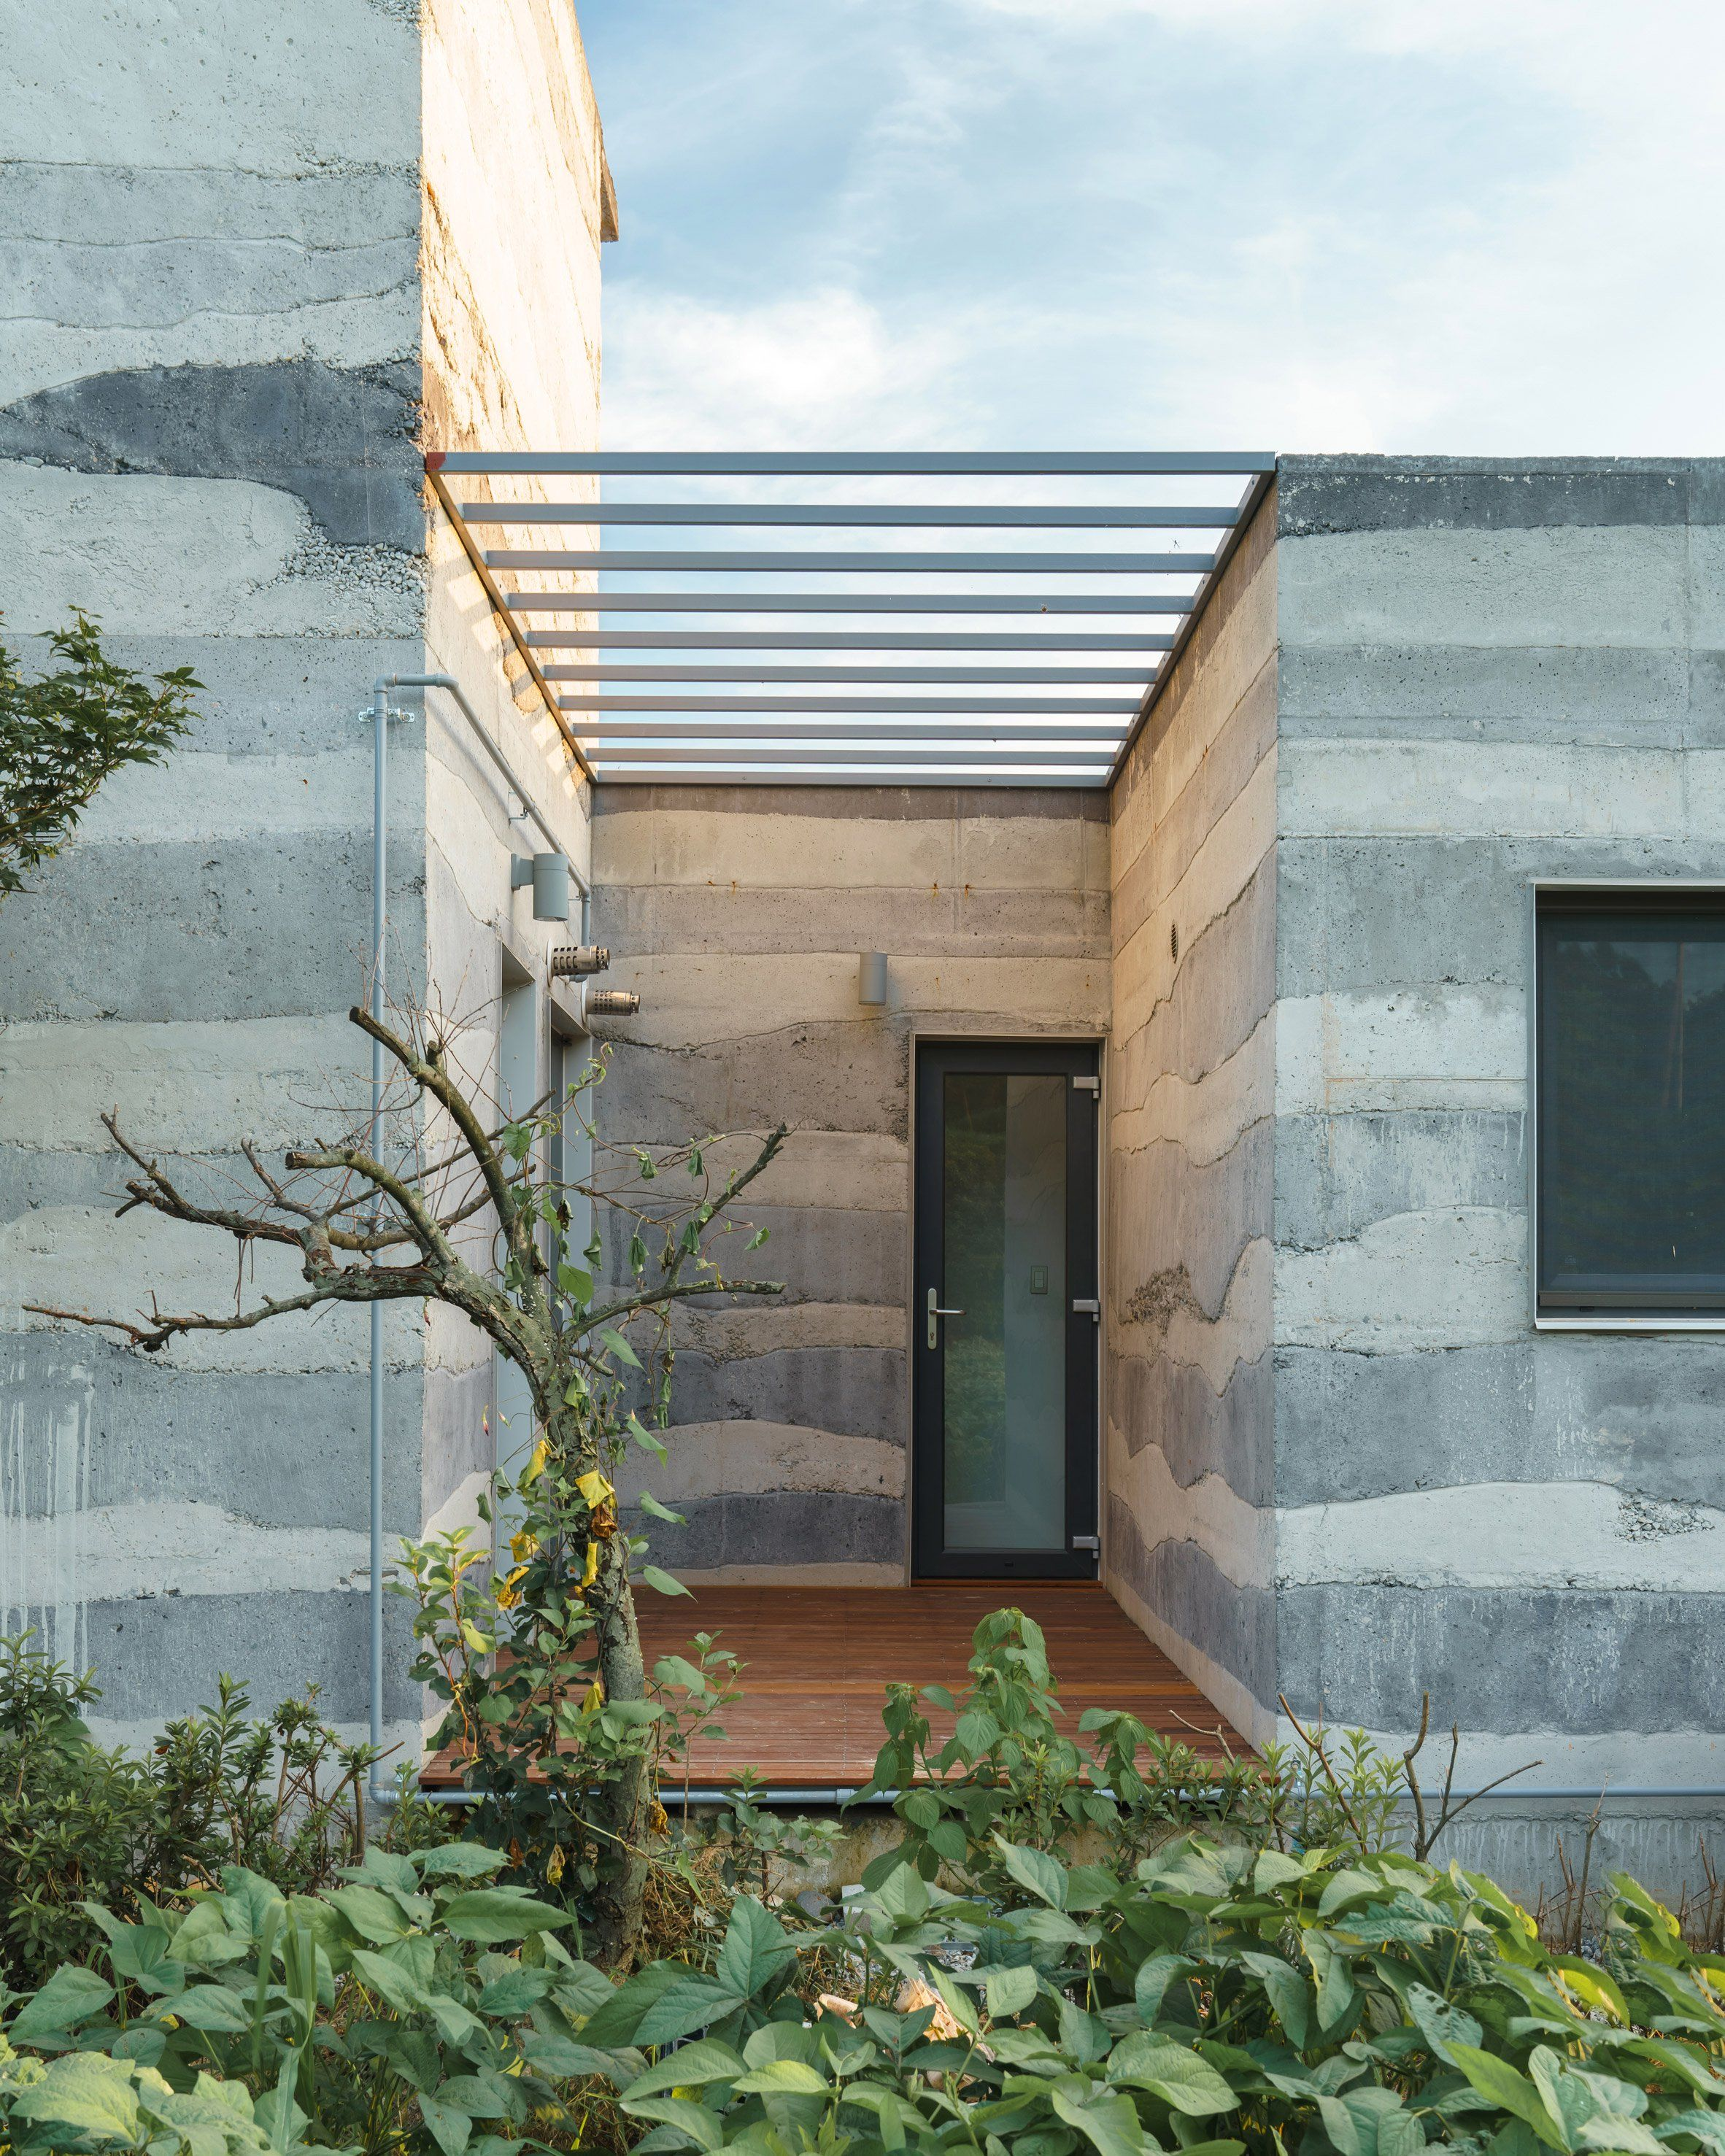 Stratum House By Stpmj Architecture With Images Concrete Architecture Concrete Houses Concrete Casting